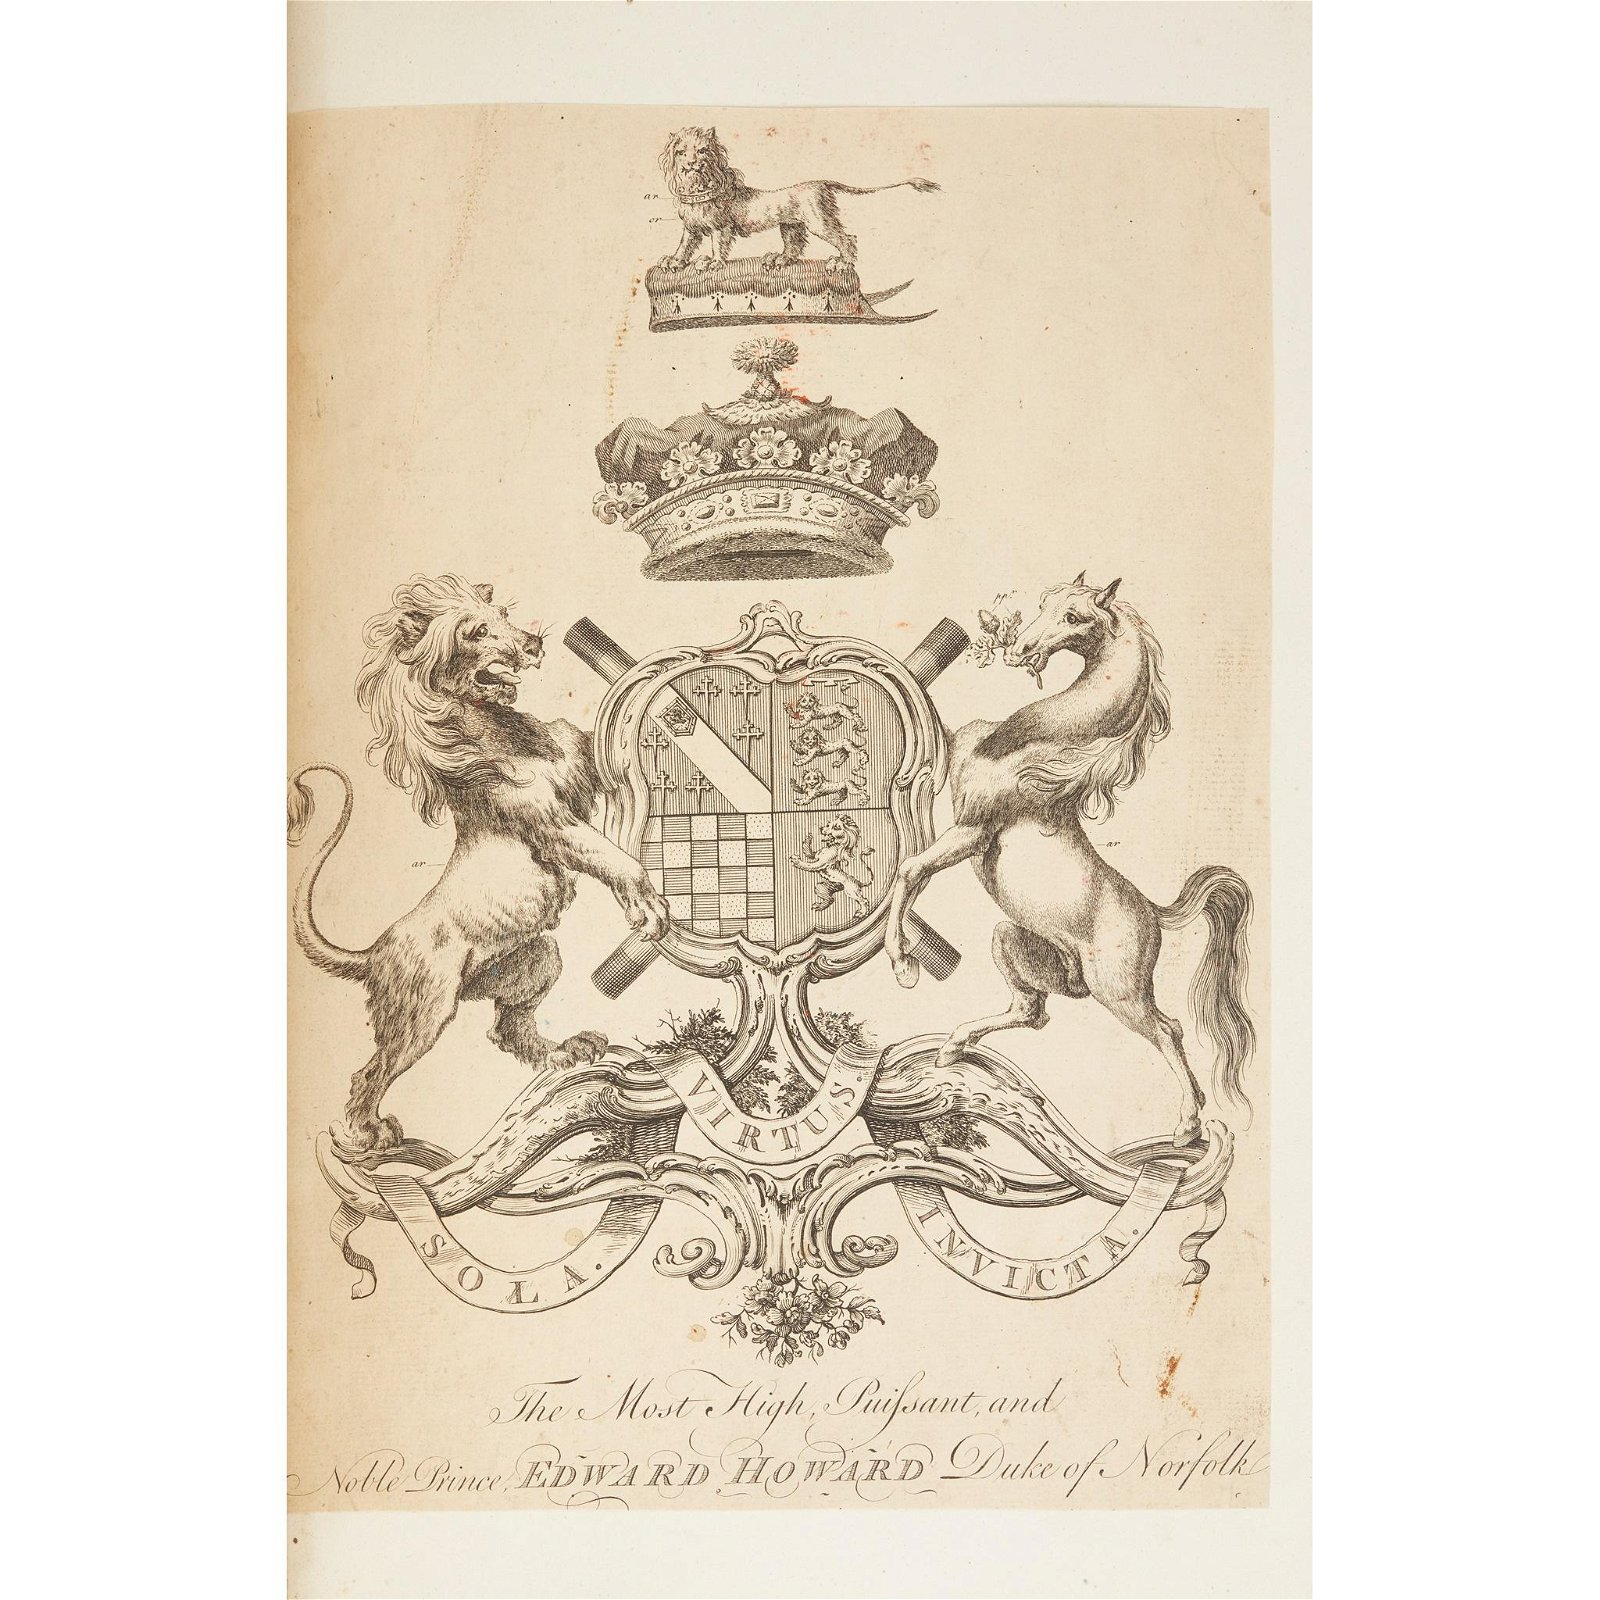 Engraved coats-of-arms 4 large volumes of cut